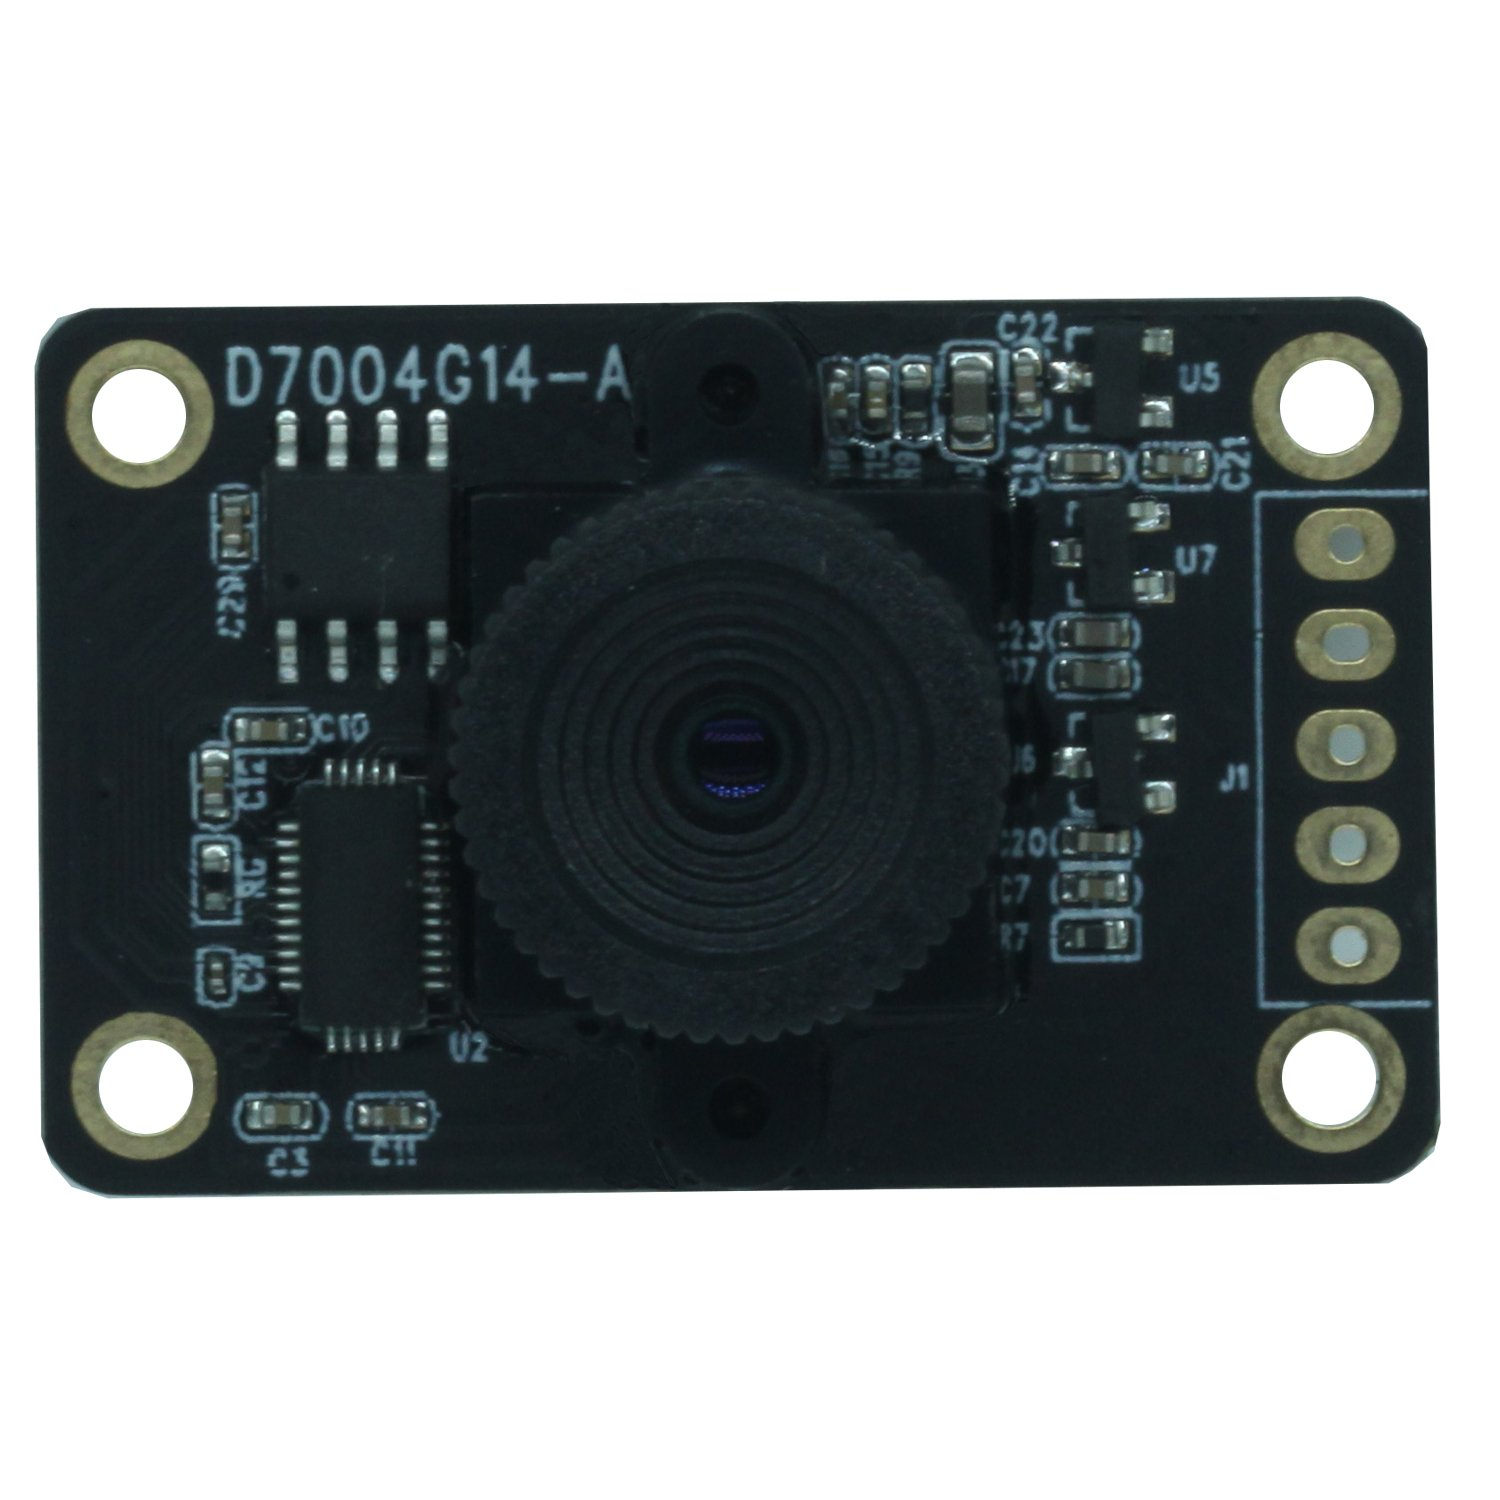 USB Mini Camera Module, 720P HD Free Driver Camera, with Non-distortion Lens FOV 120 degree, Support 1280x720@30fps,UVC Compliant, most OS, for Home monitoring,Security systems,Video system Etc